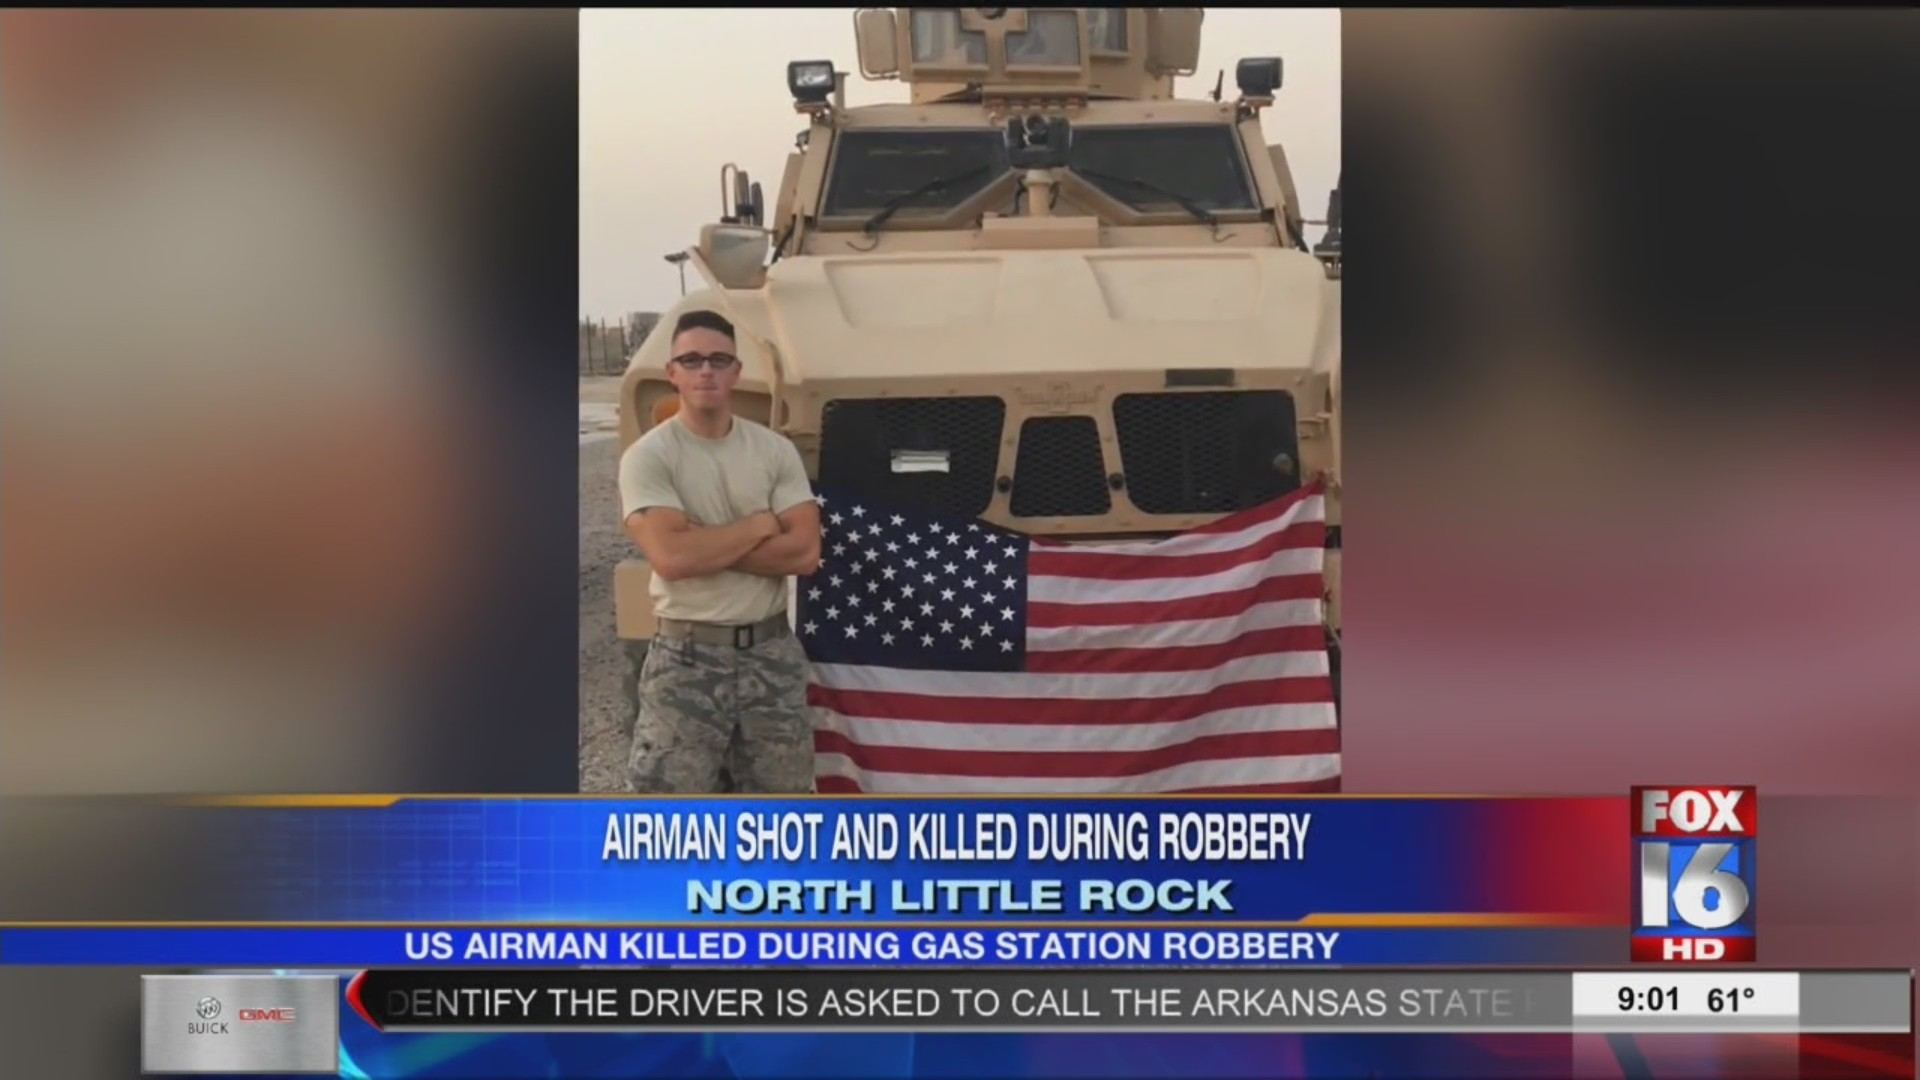 Airman_killed_during_gas_station_robbery_0_20190318022929